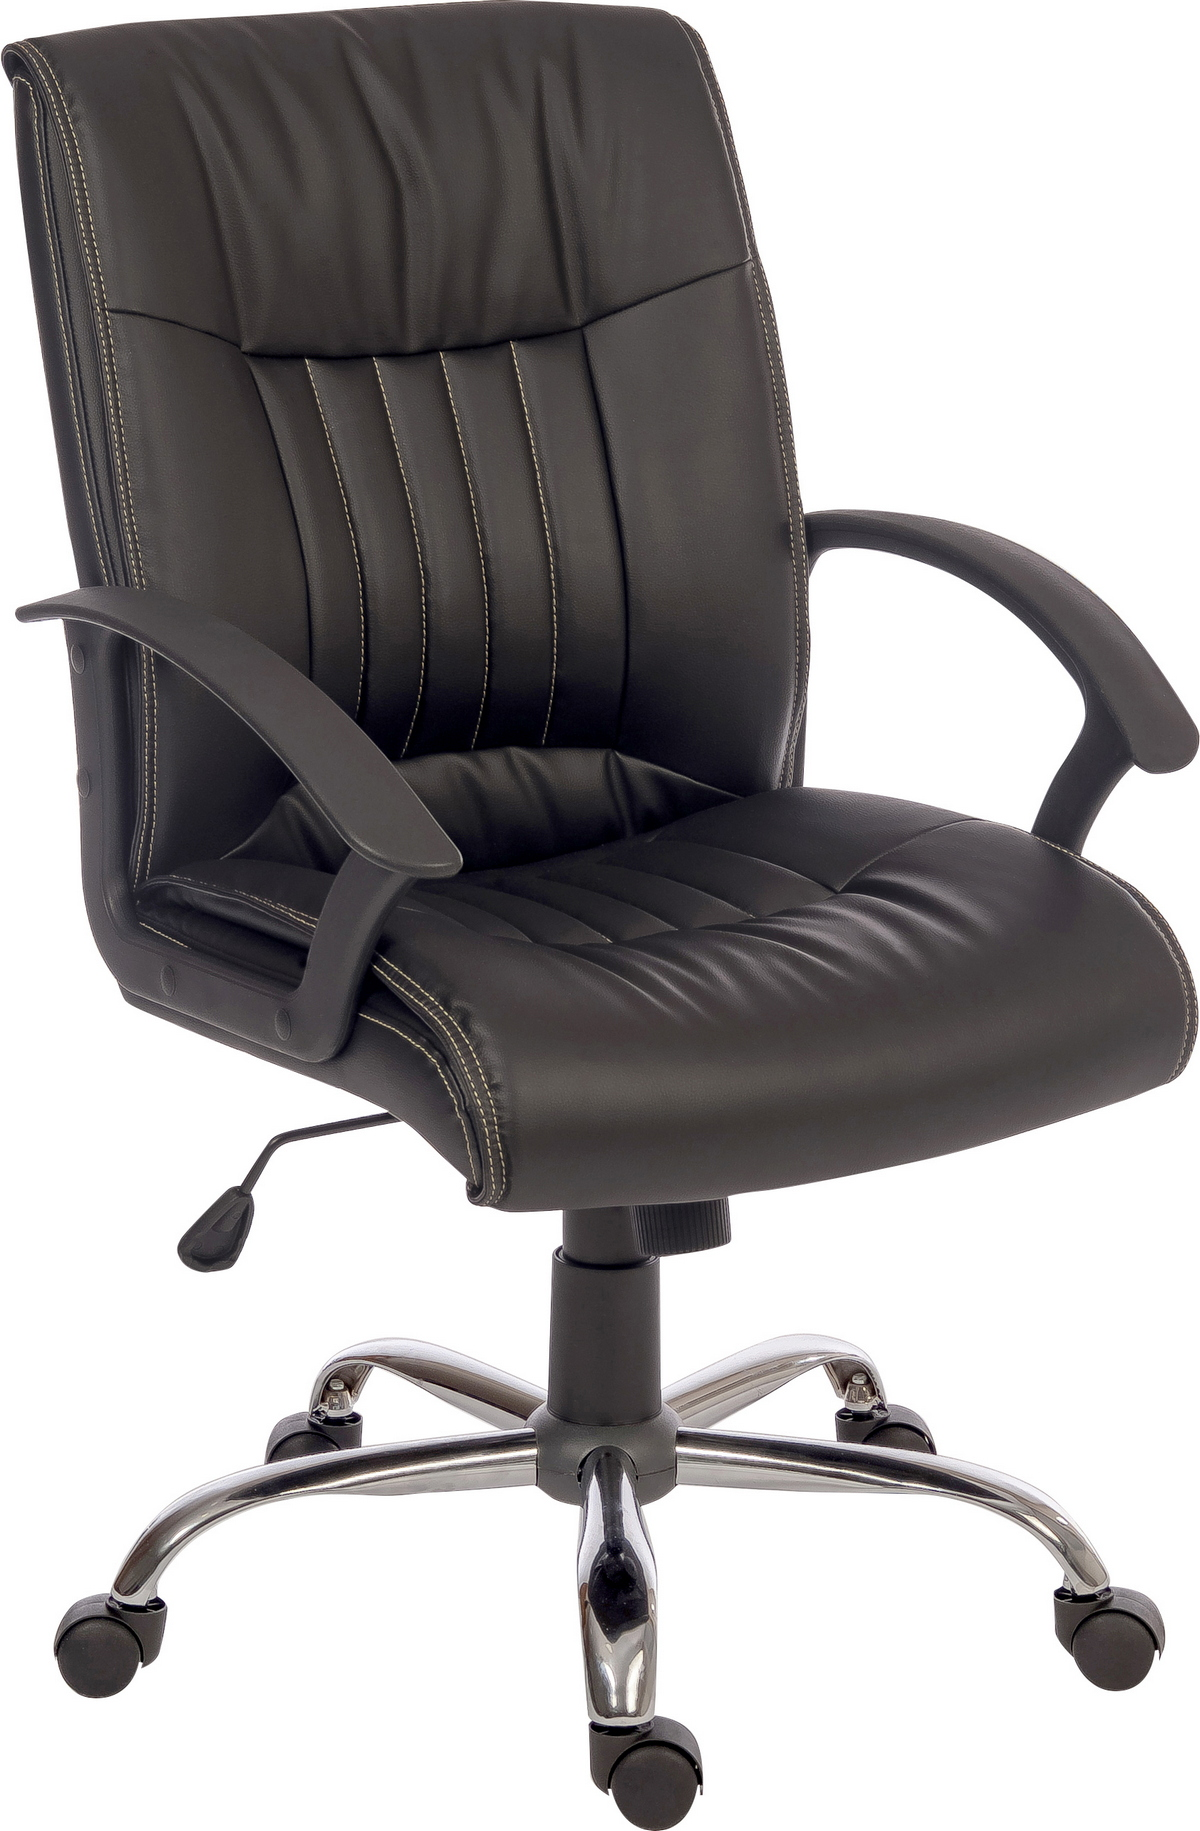 Executive fice Chairs